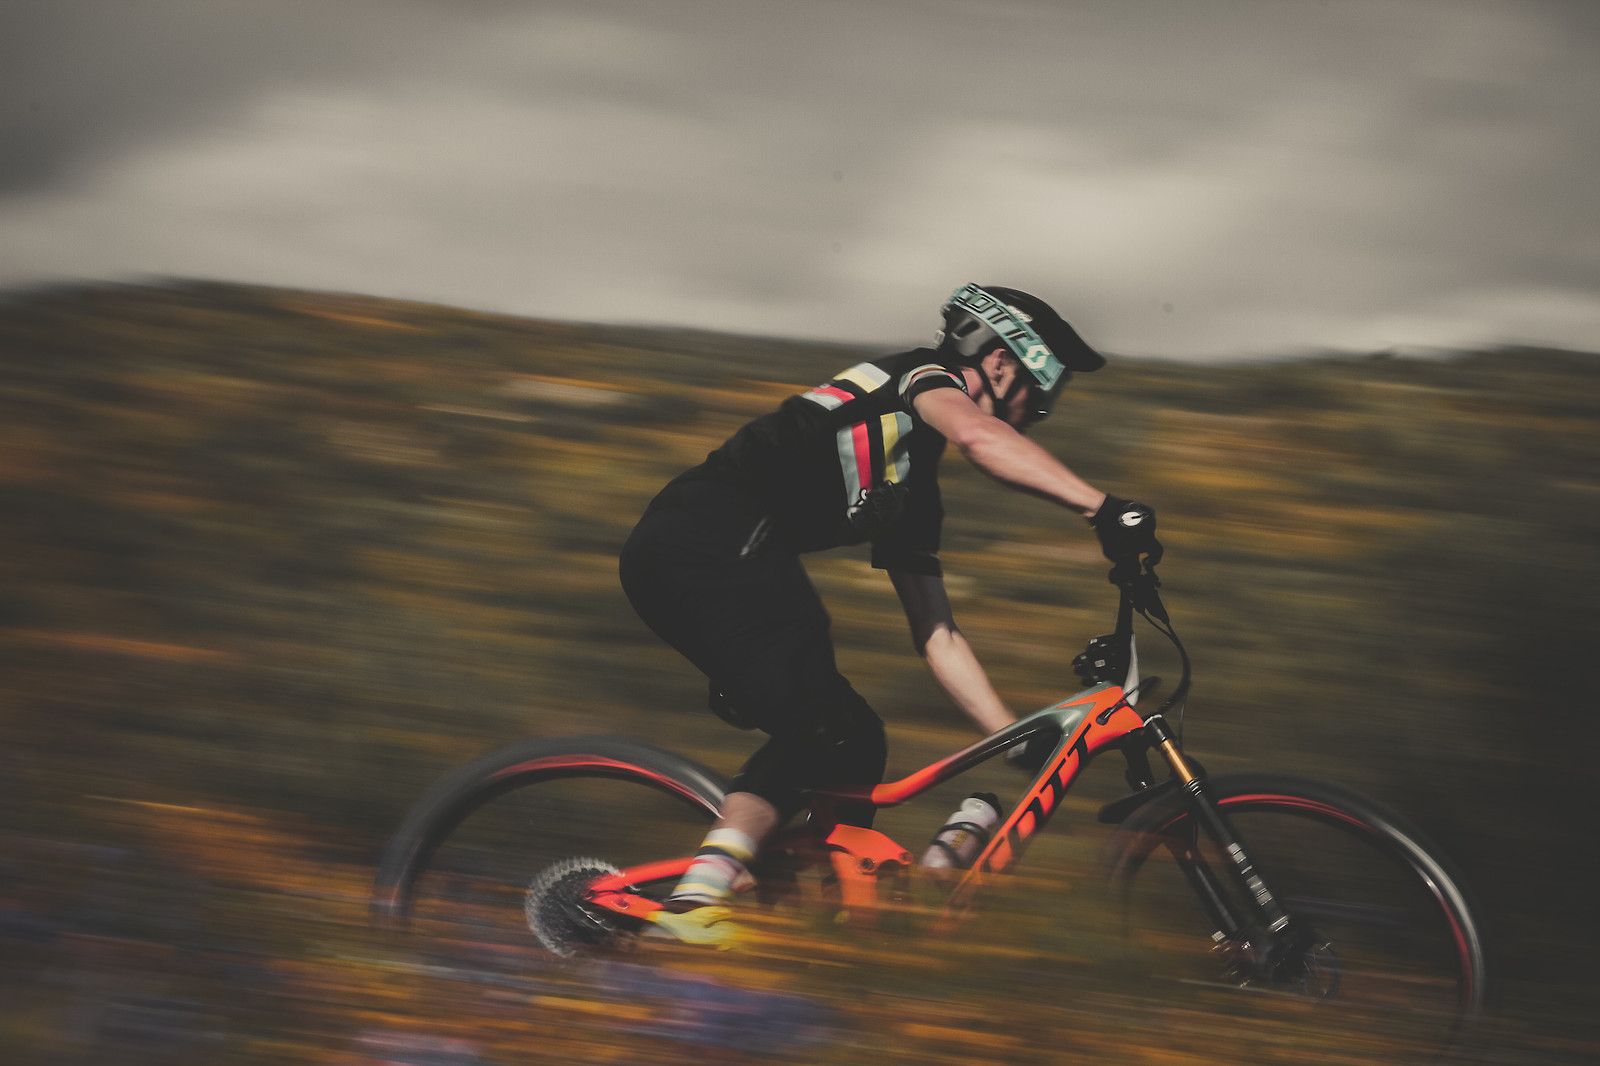 IMG 2072-4 - Liam Donohue - Mountain Biking Pictures - Vital MTB